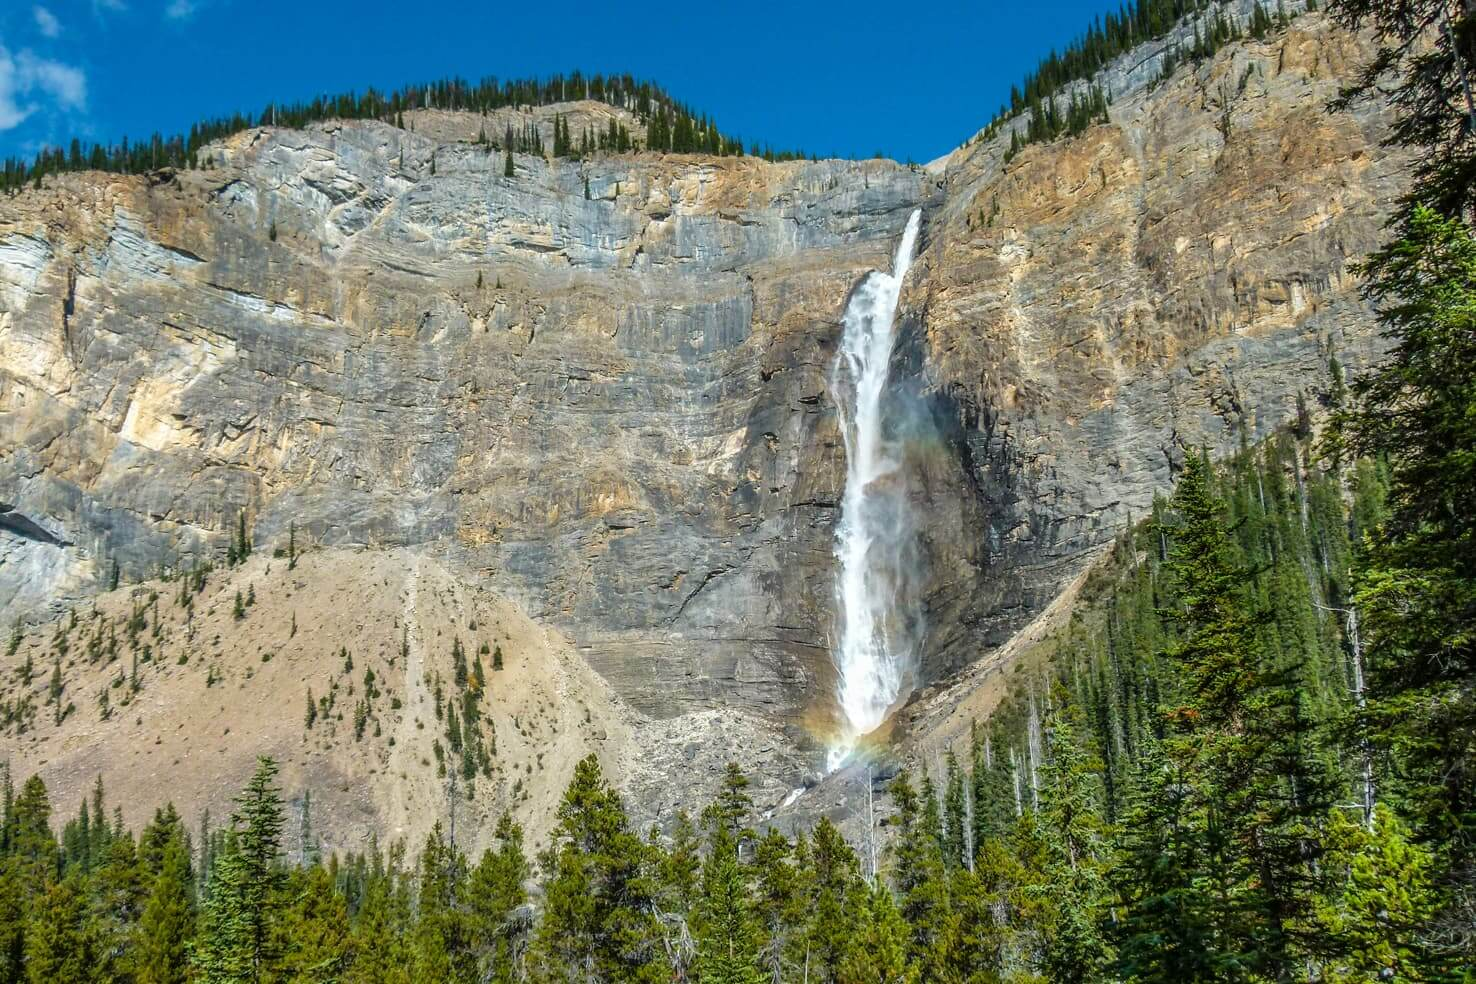 100 best things to do in Banff National Park, Canada - Spot rainbow under Takakkaw Falls